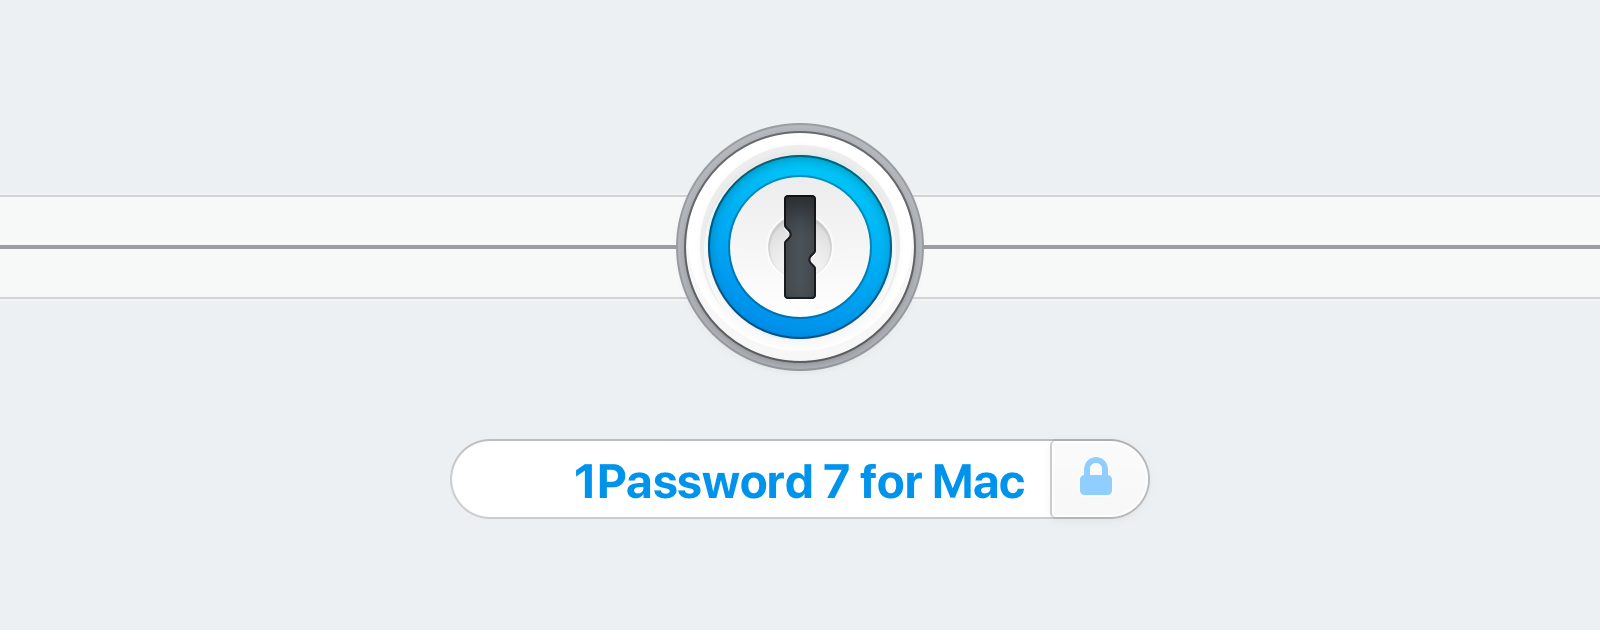 Image of 1Password, which you can use to change your password in the Reddit hack.